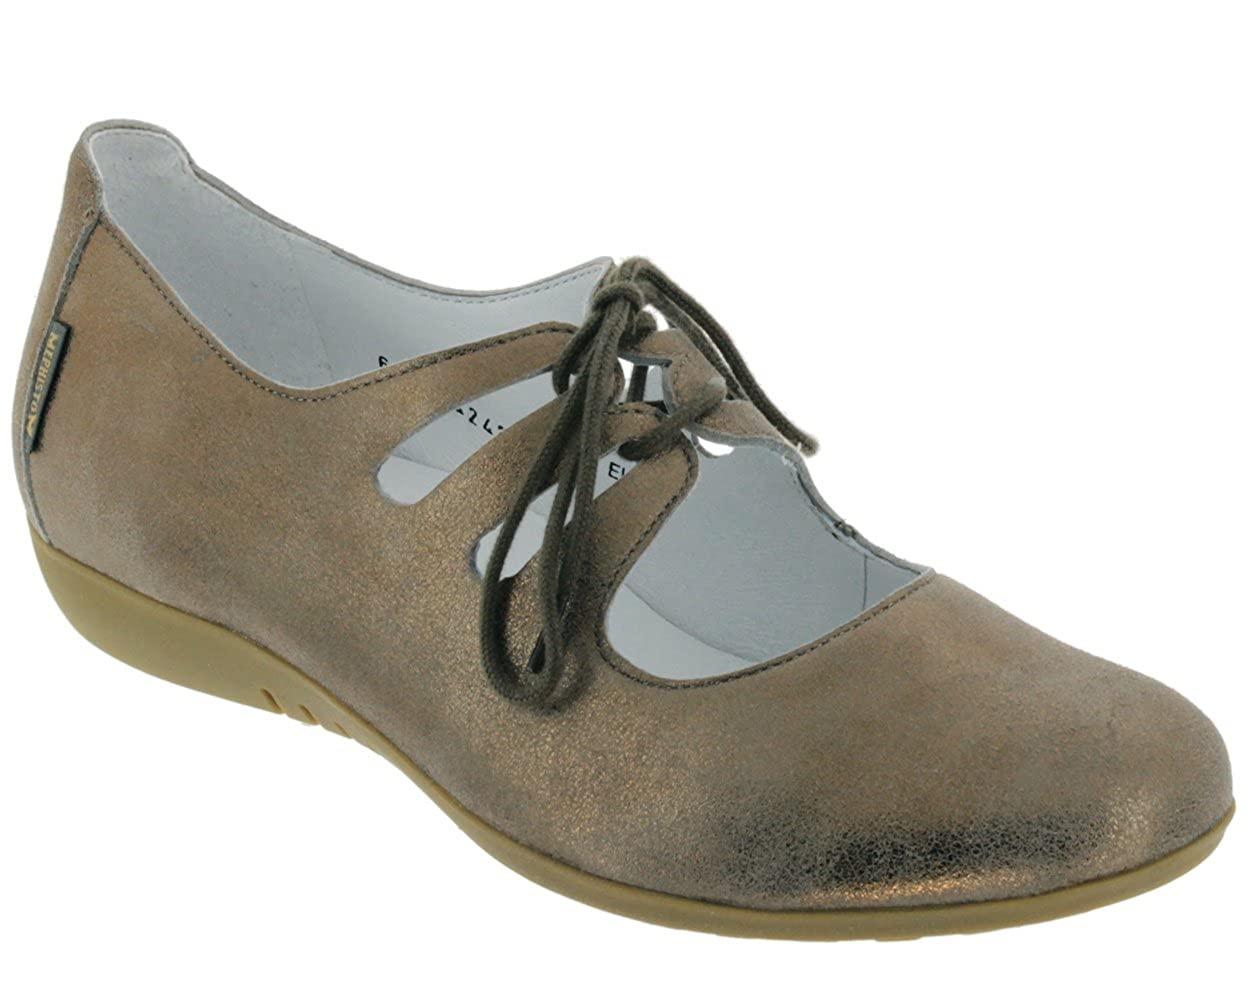 Mephisto - - Chaussures DARYA pailleté - - Taupe 41 EU|Dk Taupe 3bbbfb